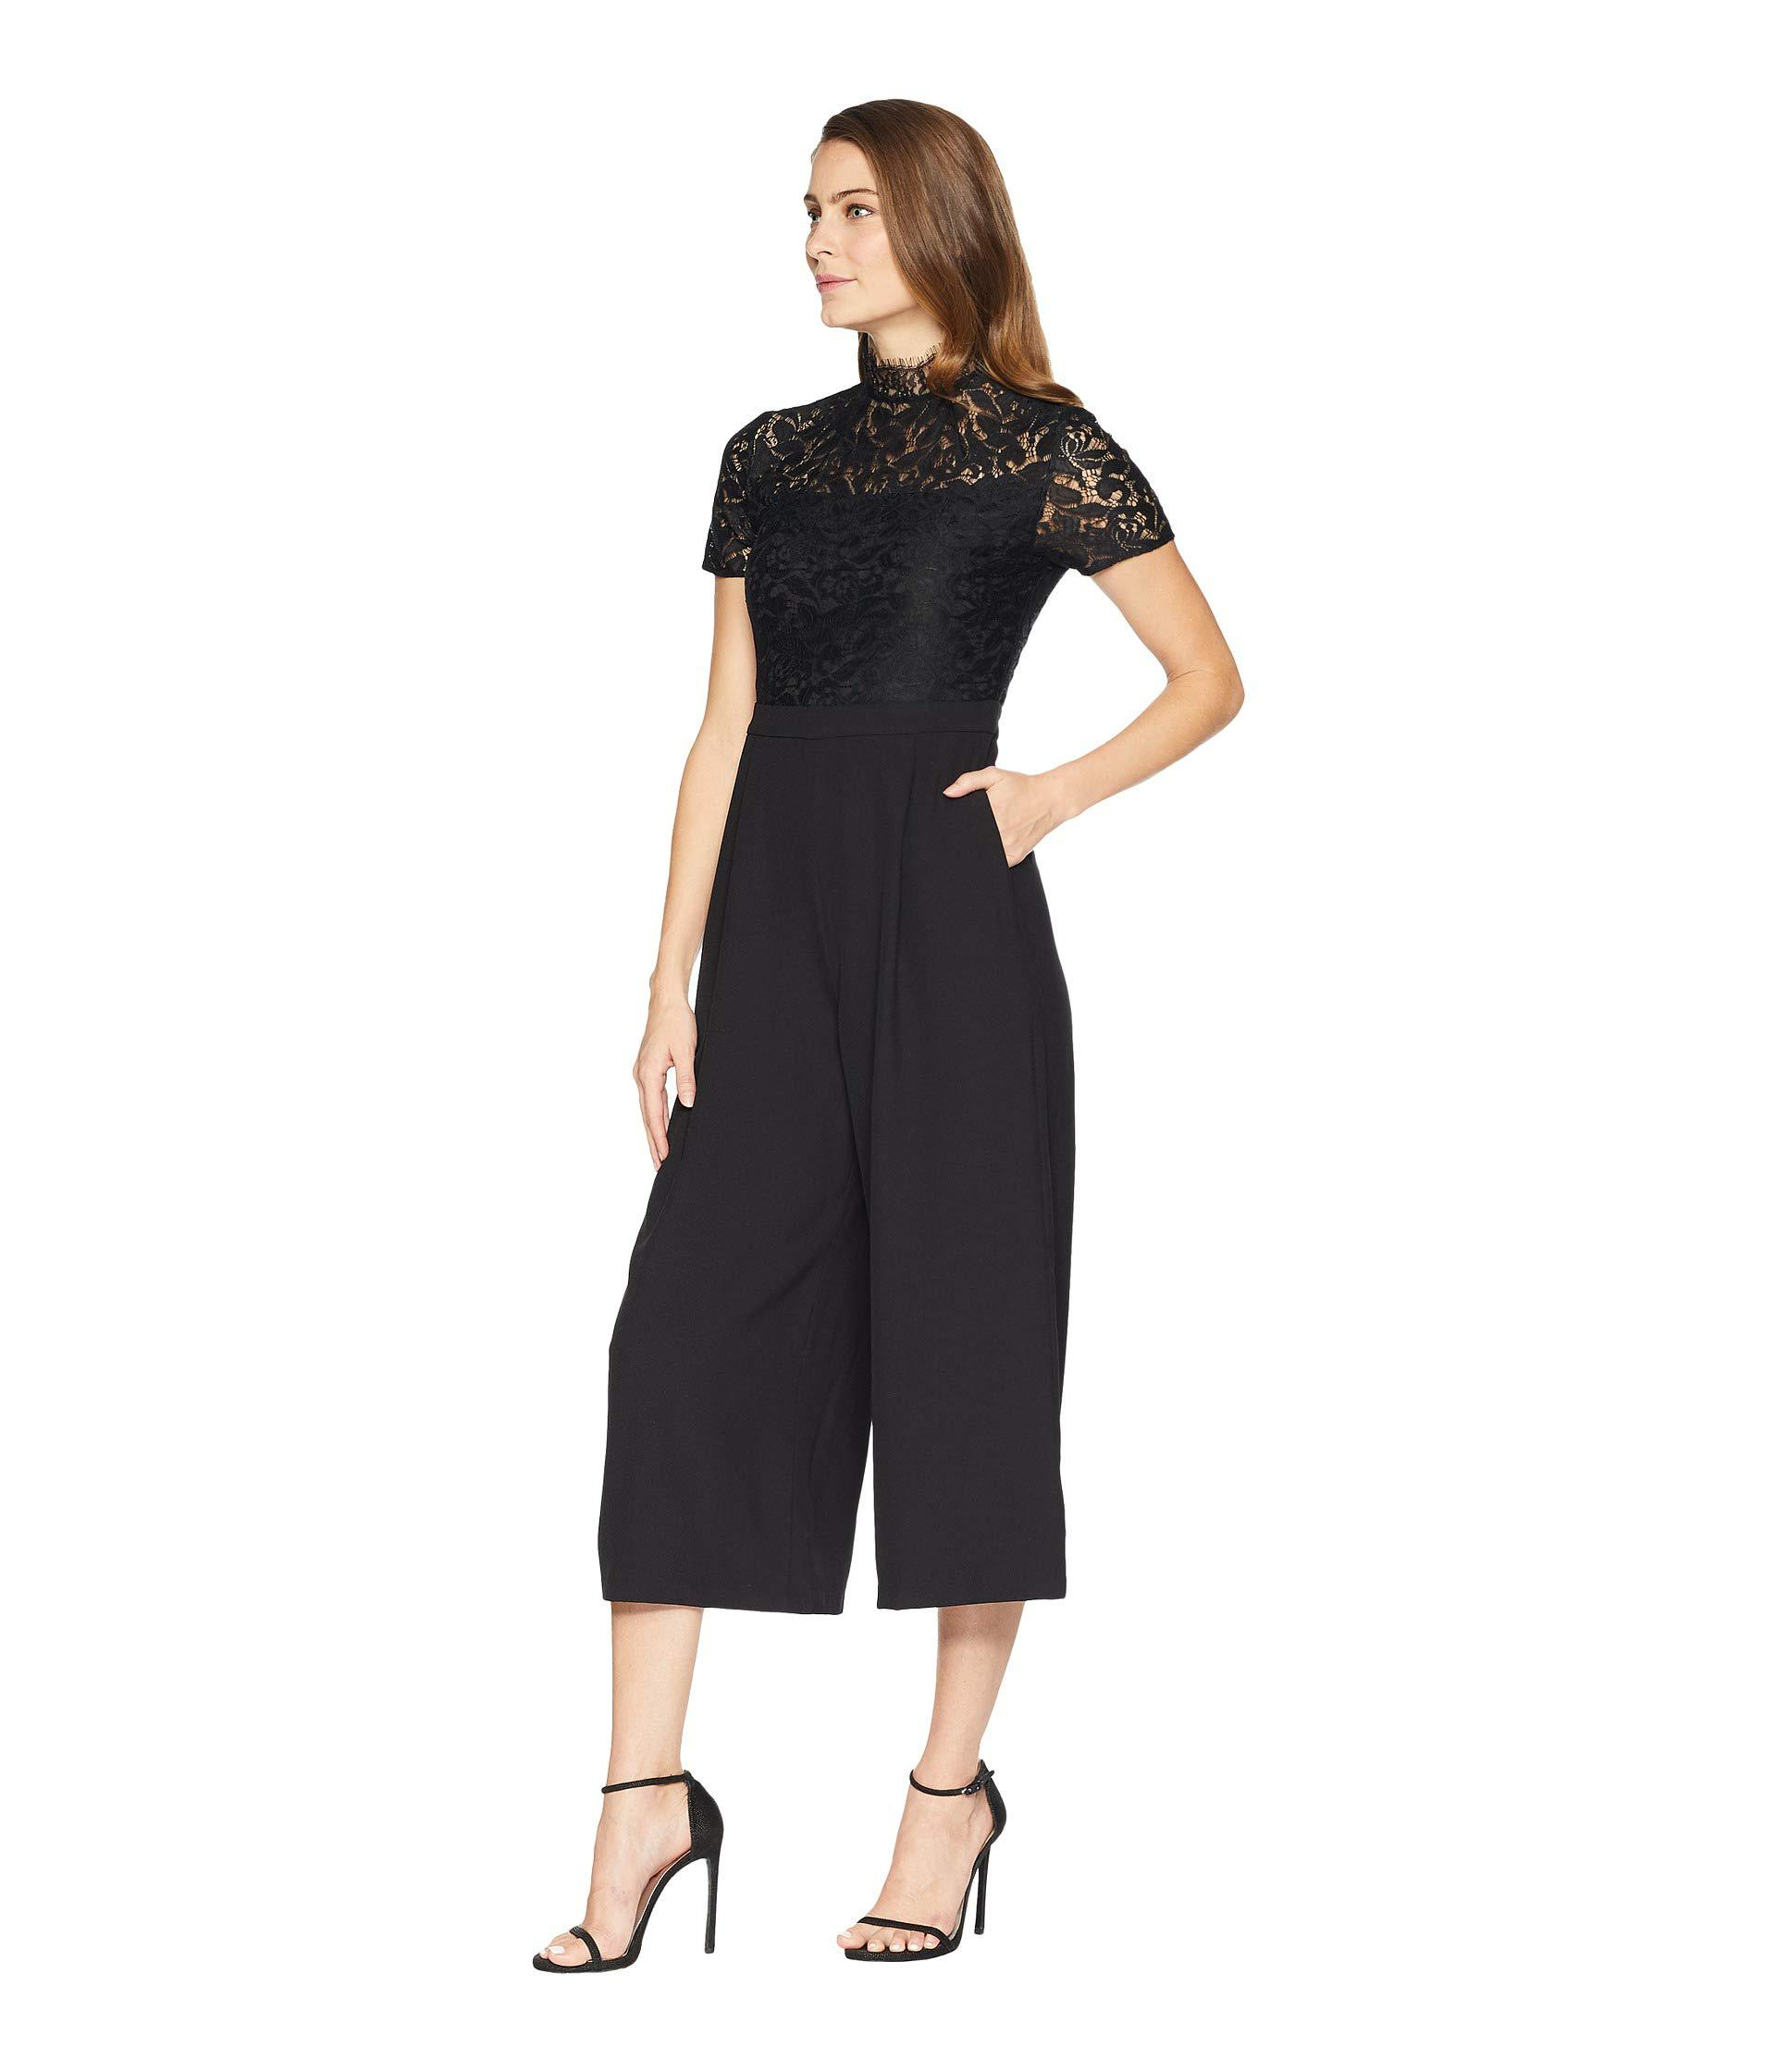 30774af309a Lyst - Catherine Malandrino Lace Cropped Jumpsuit in Black